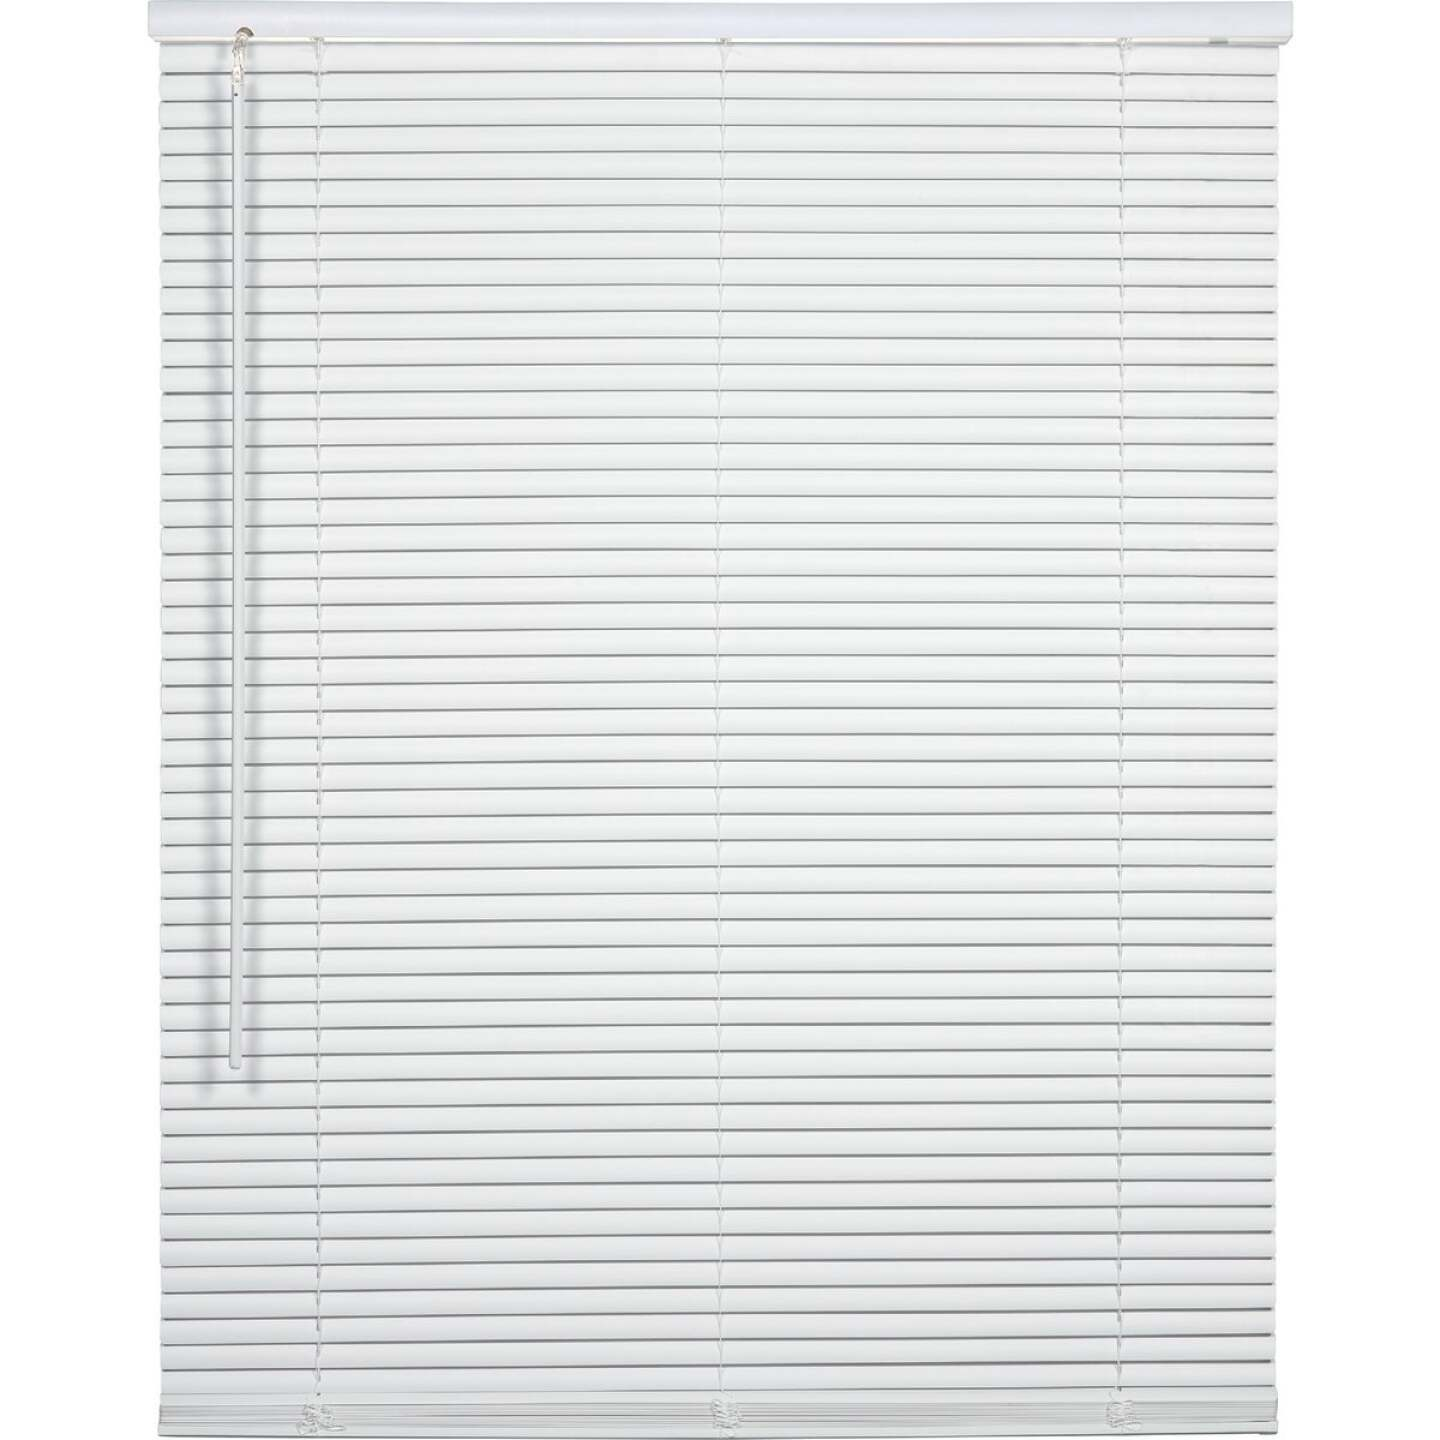 Home Impressions 52 In. x 64 In. x 1 In. White Vinyl Light Filtering Cordless Mini Blind Image 1